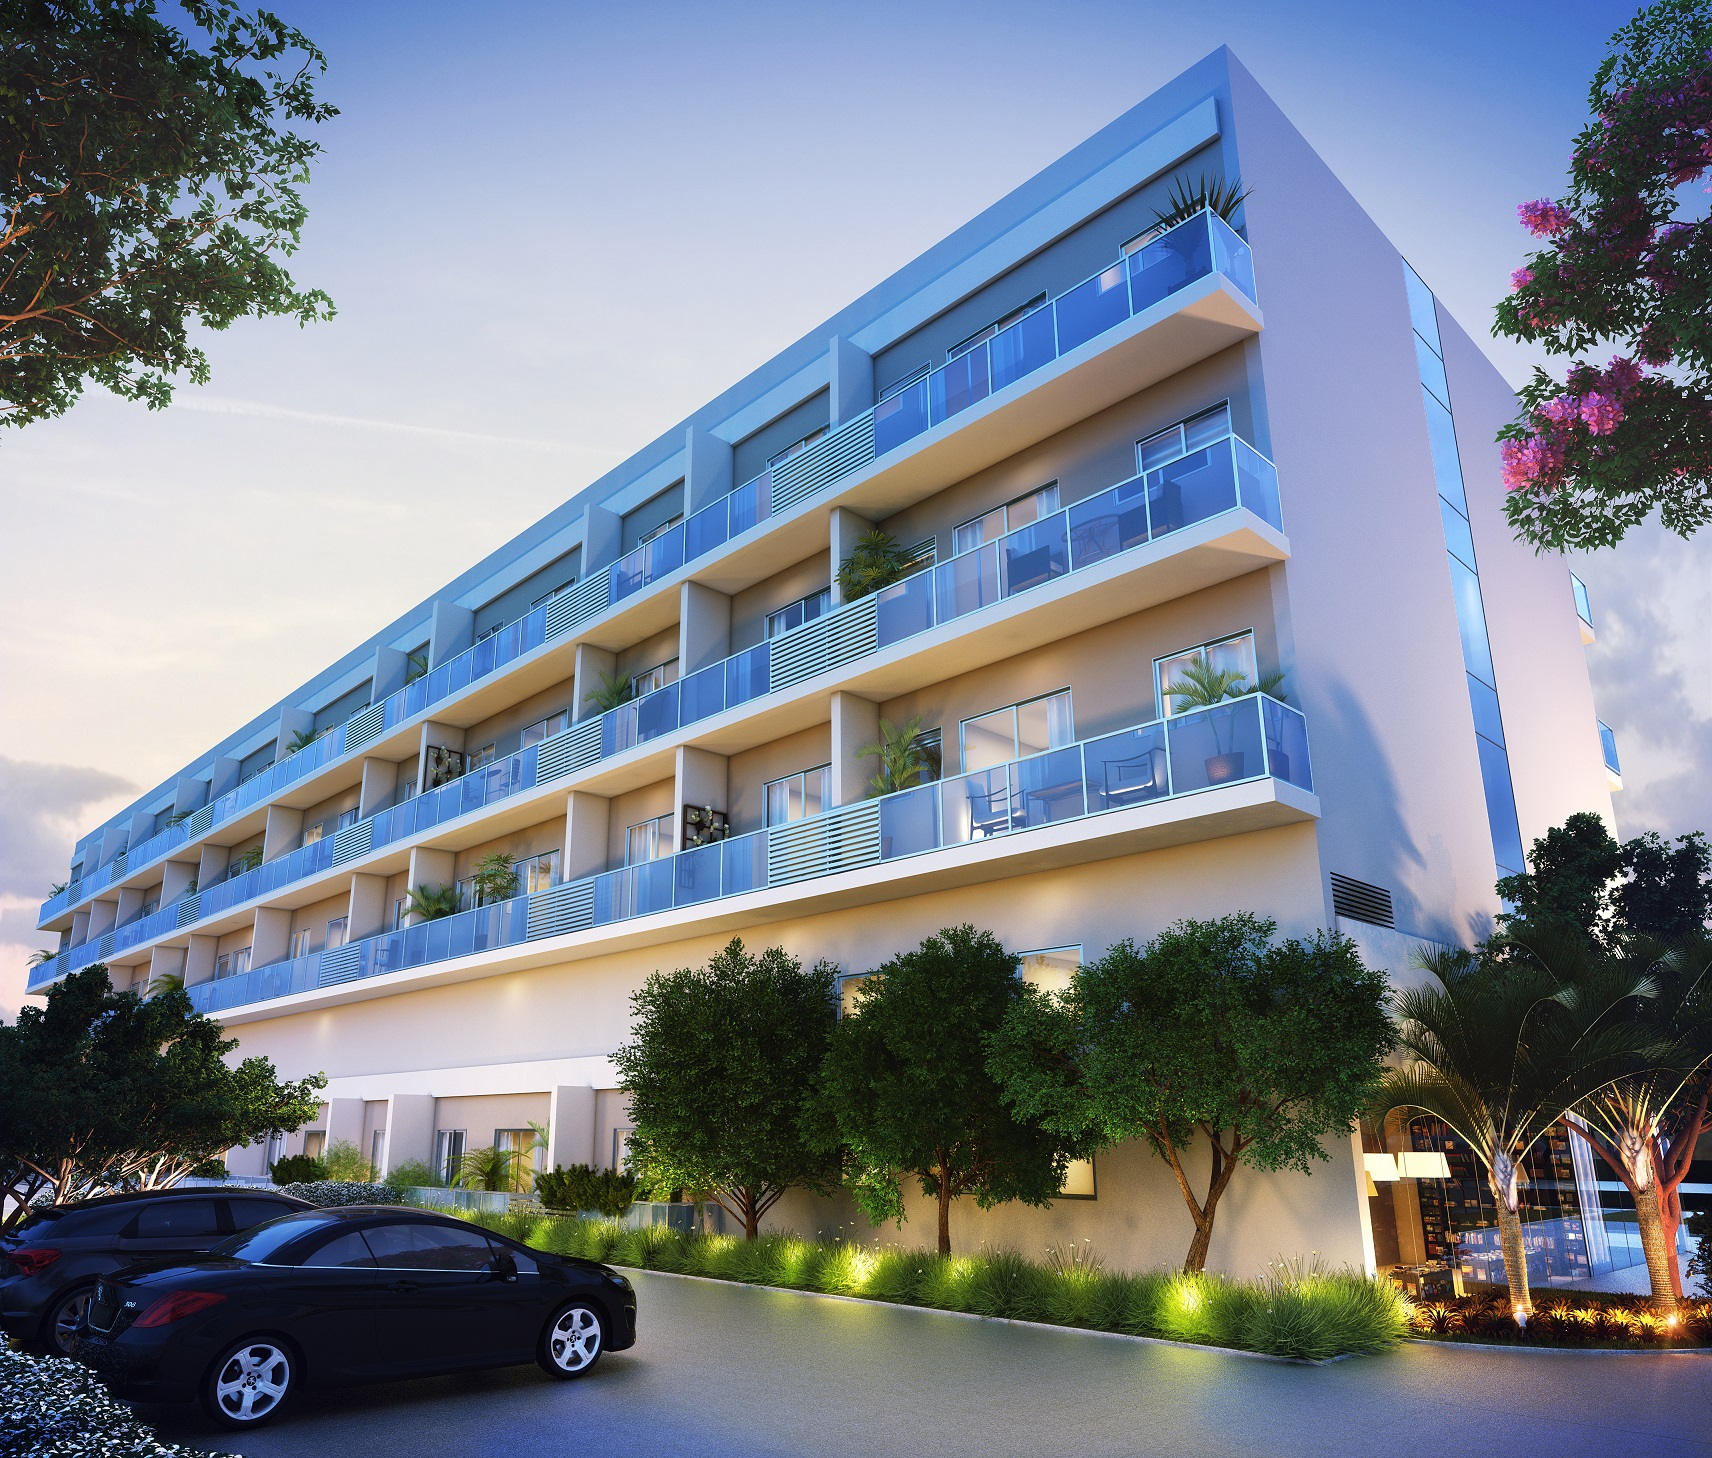 Fachada noturna Neolink Stay Apartments